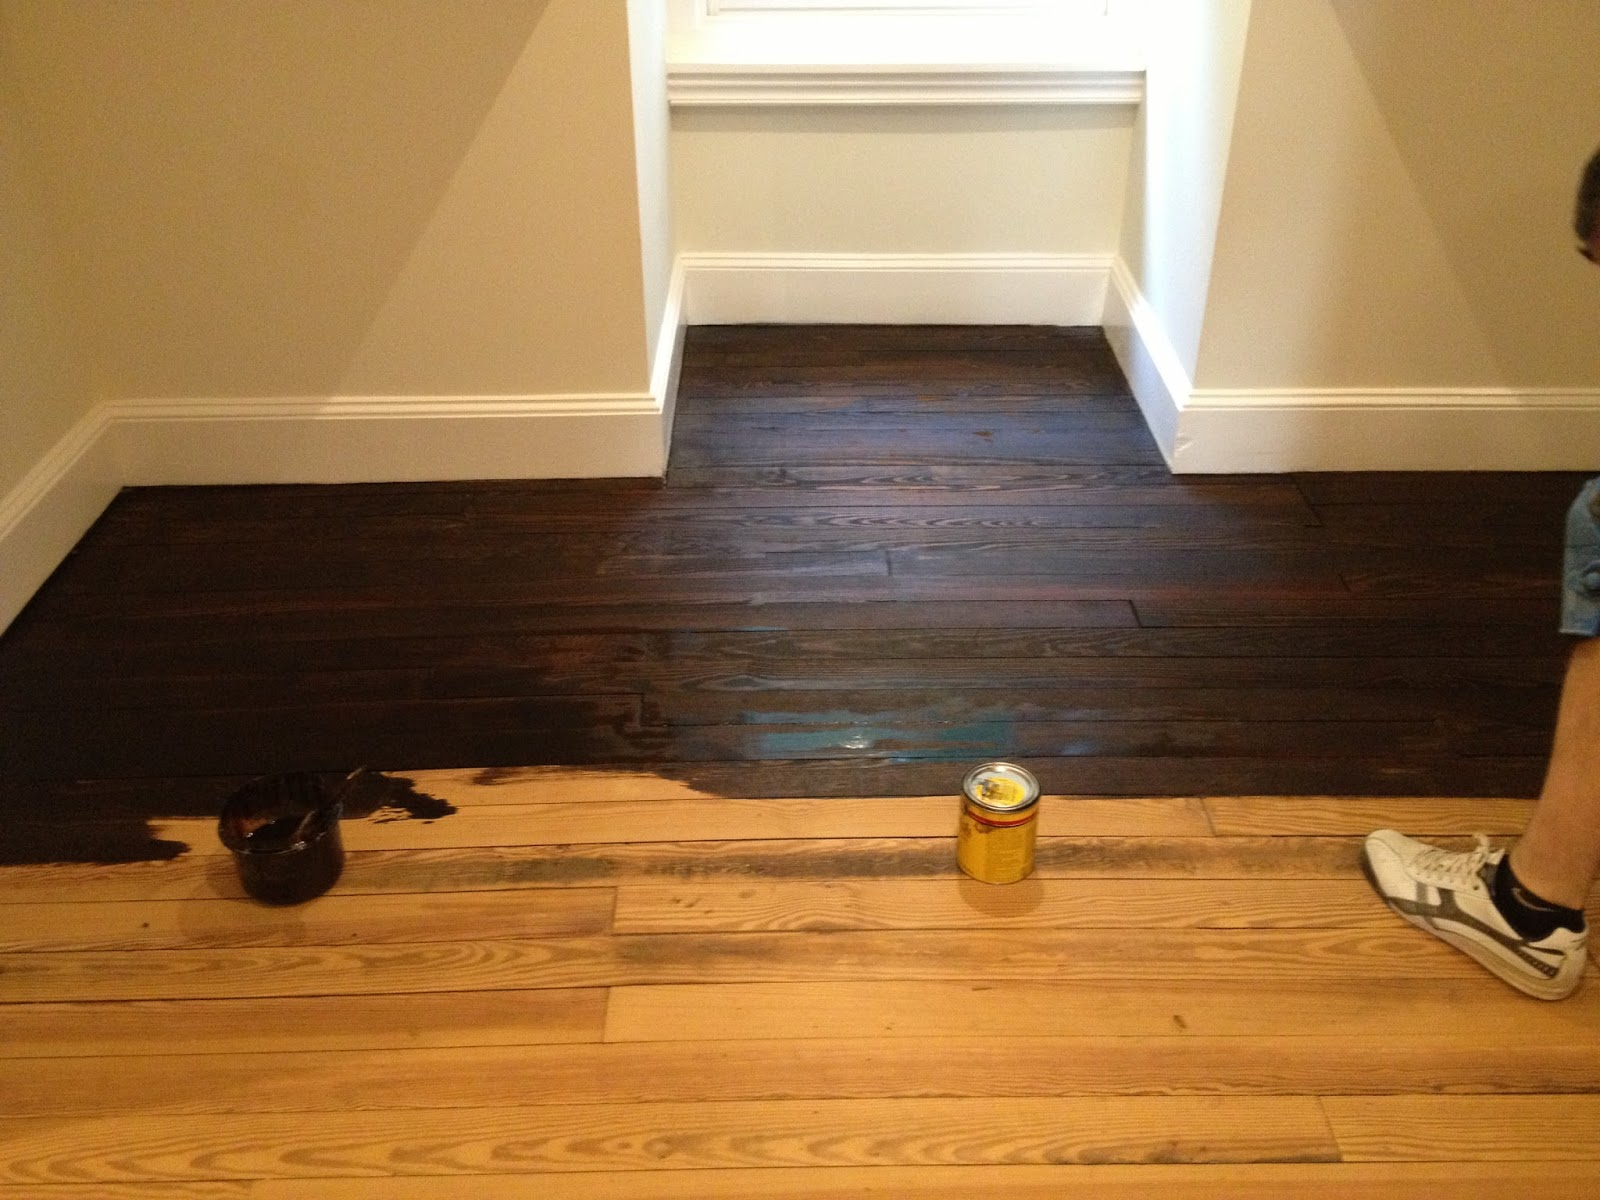 High street market 3rd floor refinished hardwood floor diy for Sanding hardwood floors